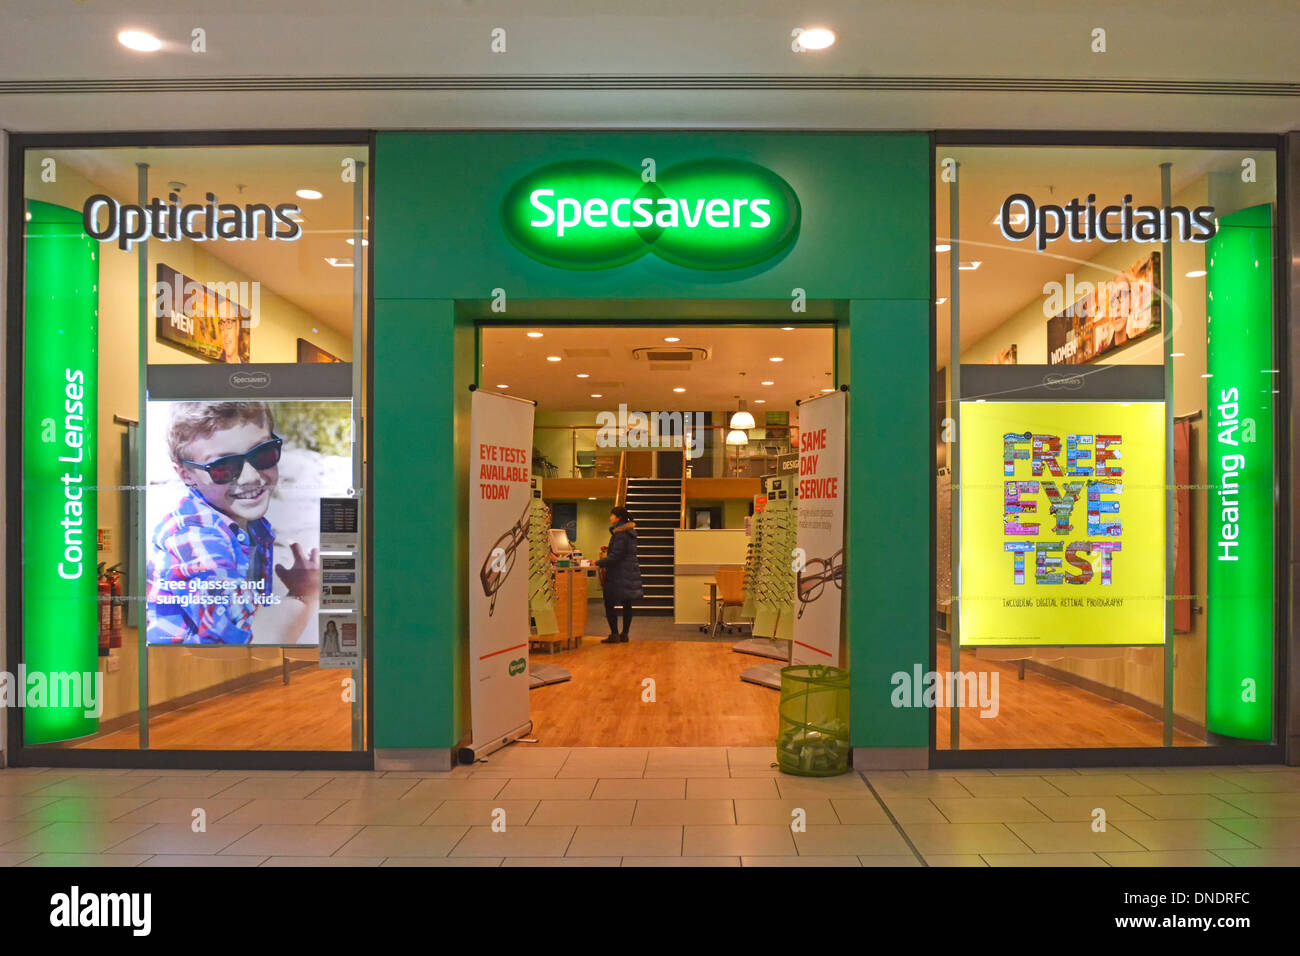 6ea5ba8cd Specsavers Opticians shop front in shopping Mall Stock Photo ...